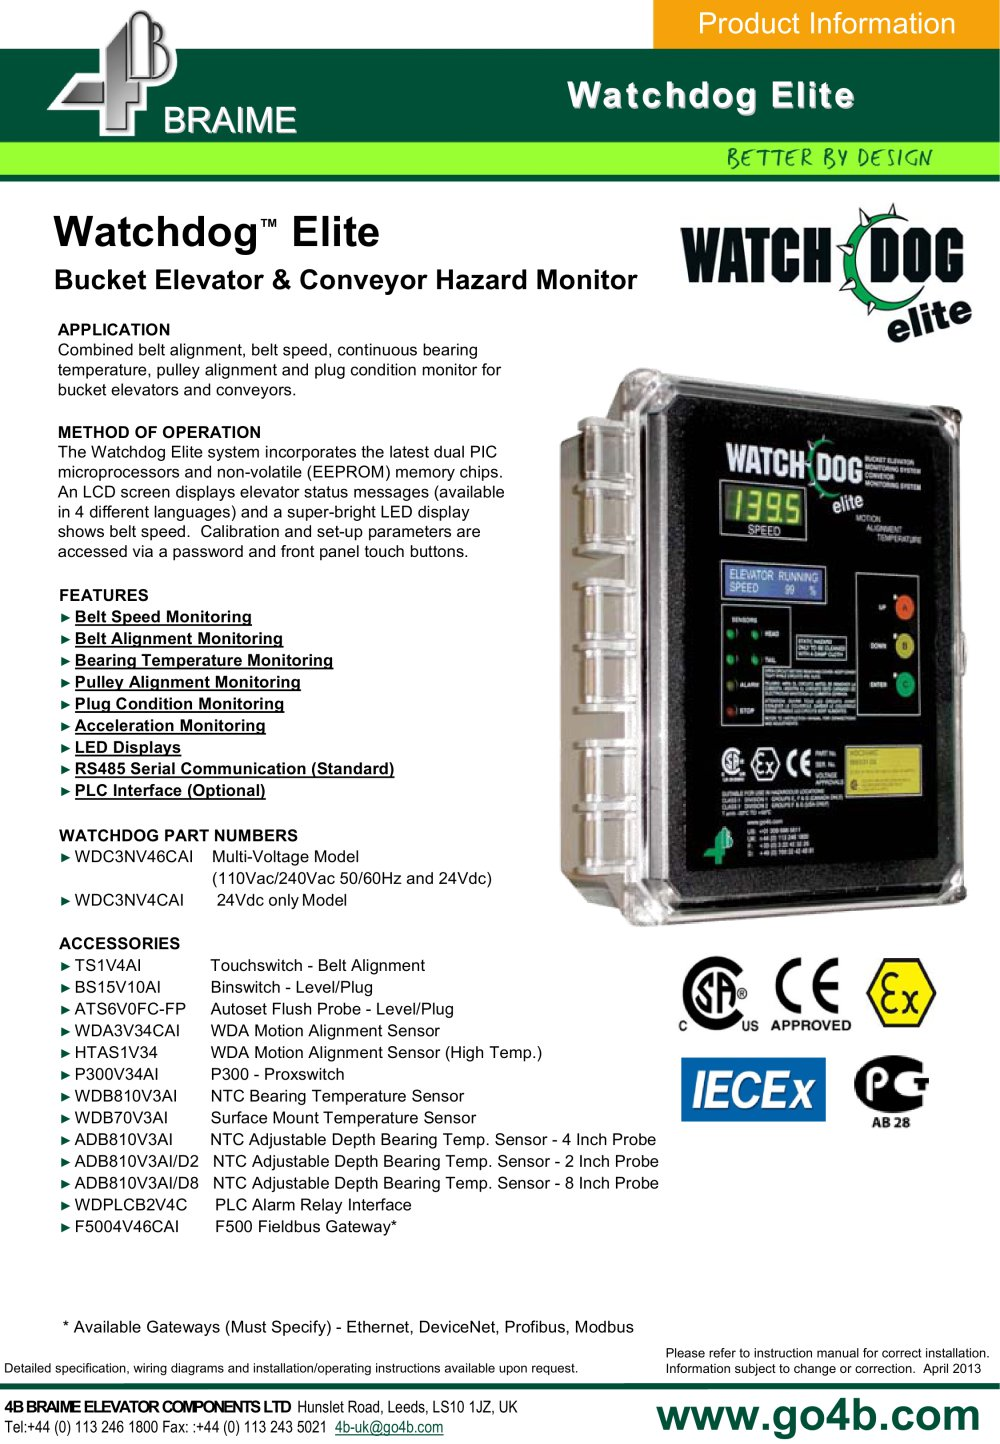 Watchdog elite bucket elevator monitor 4b braime components watchdog elite bucket elevator monitor 1 5 pages cheapraybanclubmaster Images